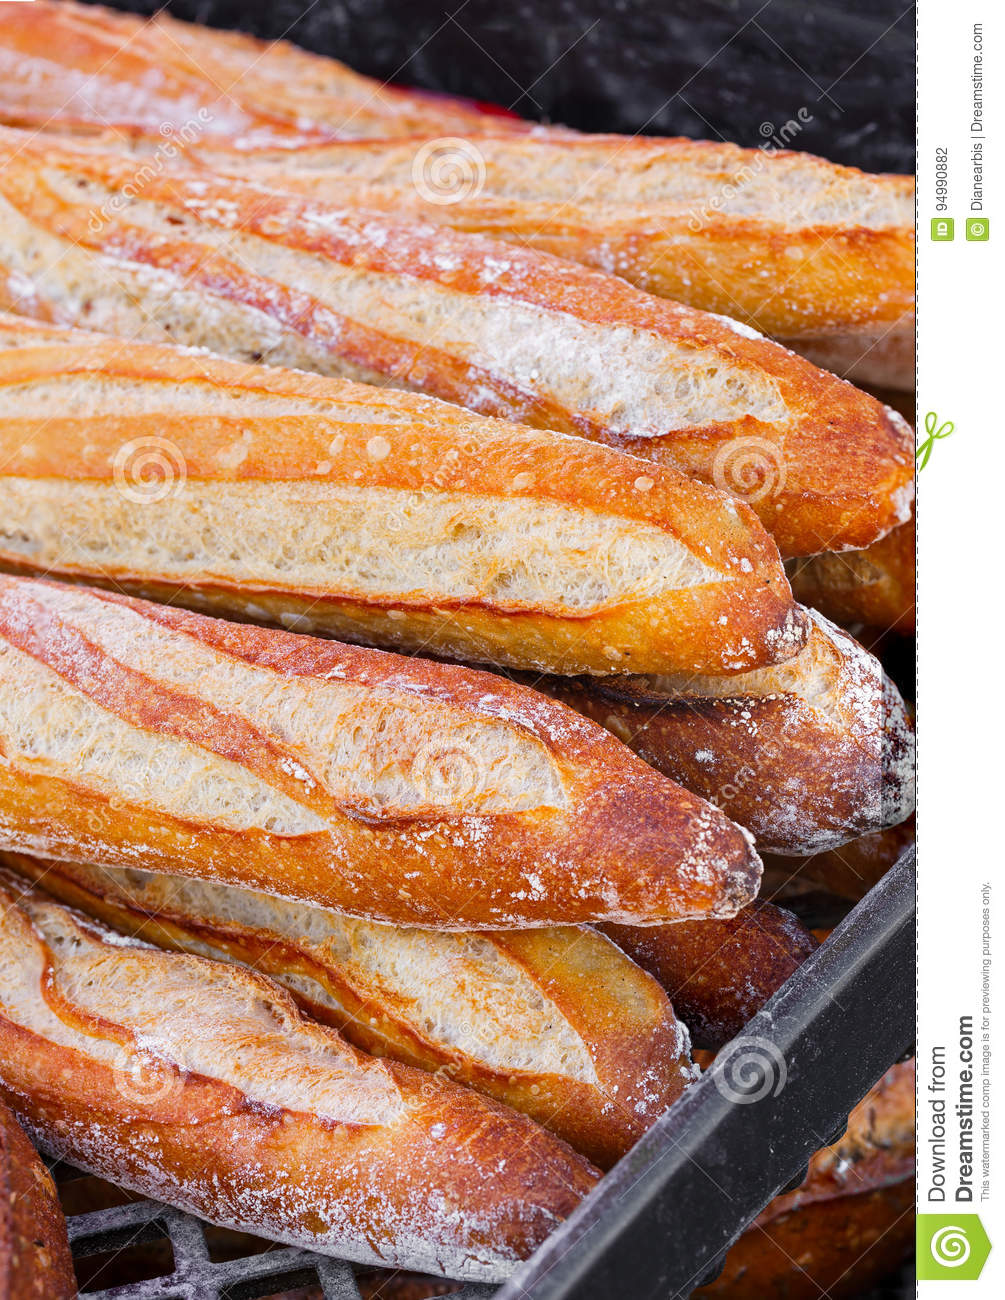 French Bread Loaves at an Outdoor Market